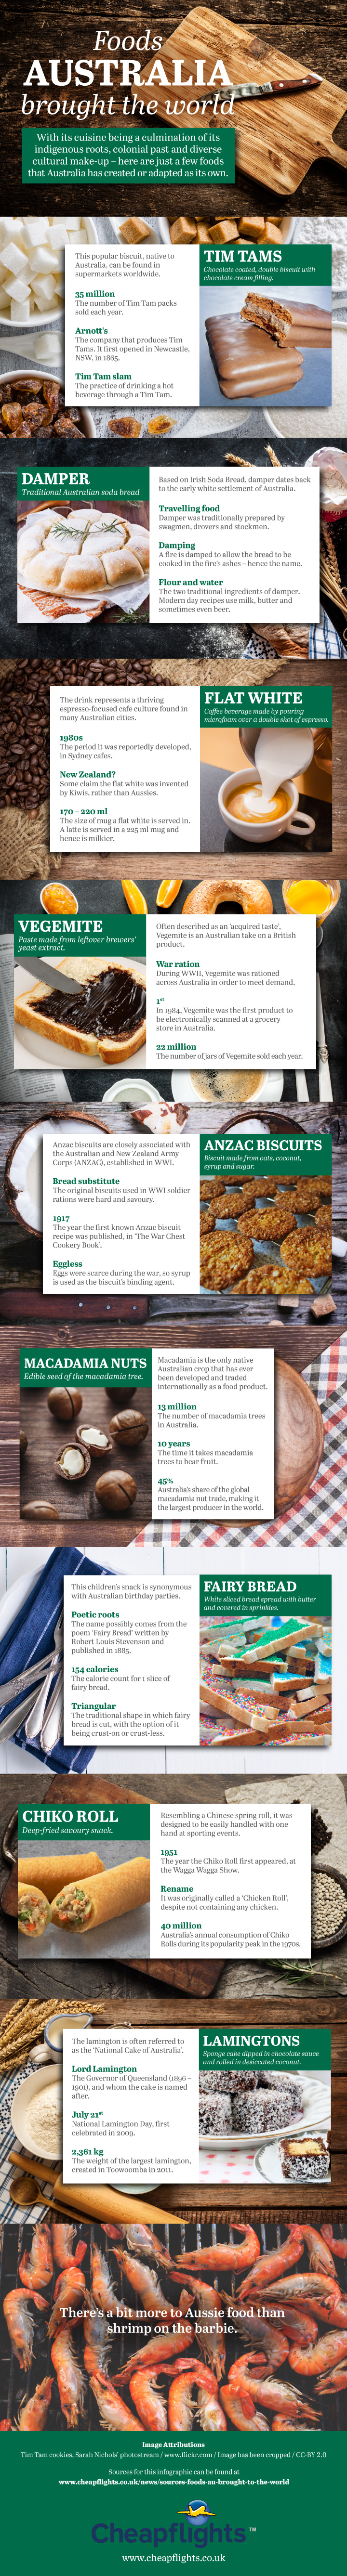 Foods Australia Brought to the World (Infographic)